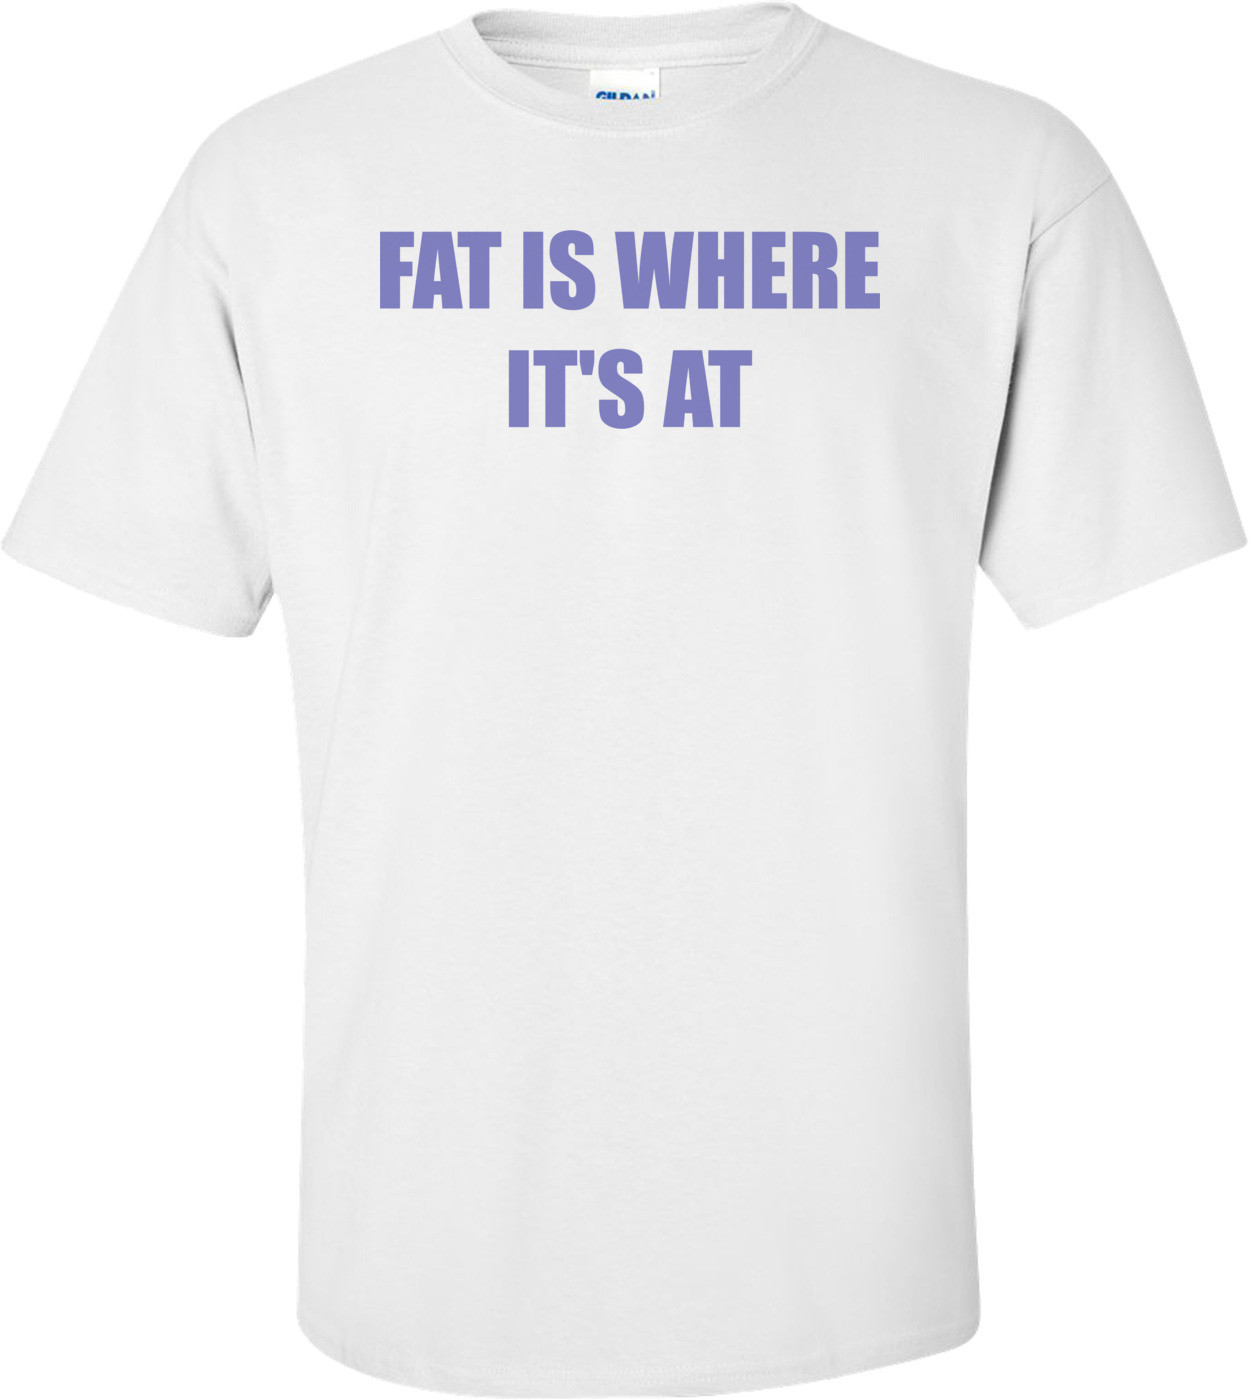 FAT IS WHERE IT'S AT Shirt